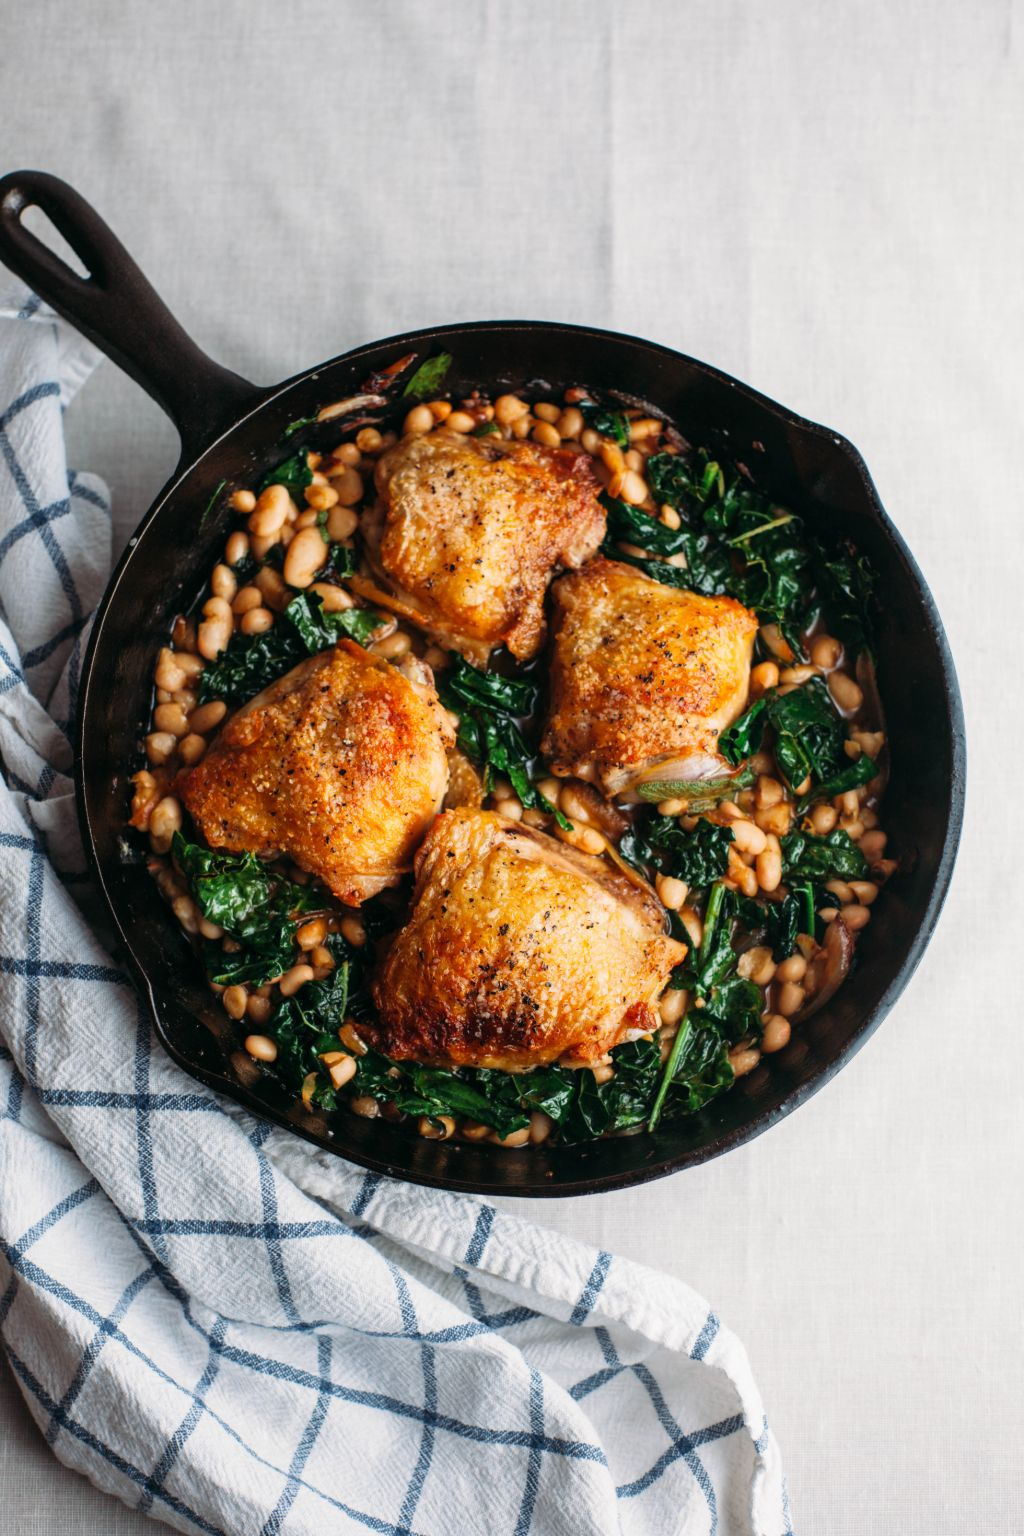 Crispy Chicken Thighs with Greens and Beans - Tastemaker Blog